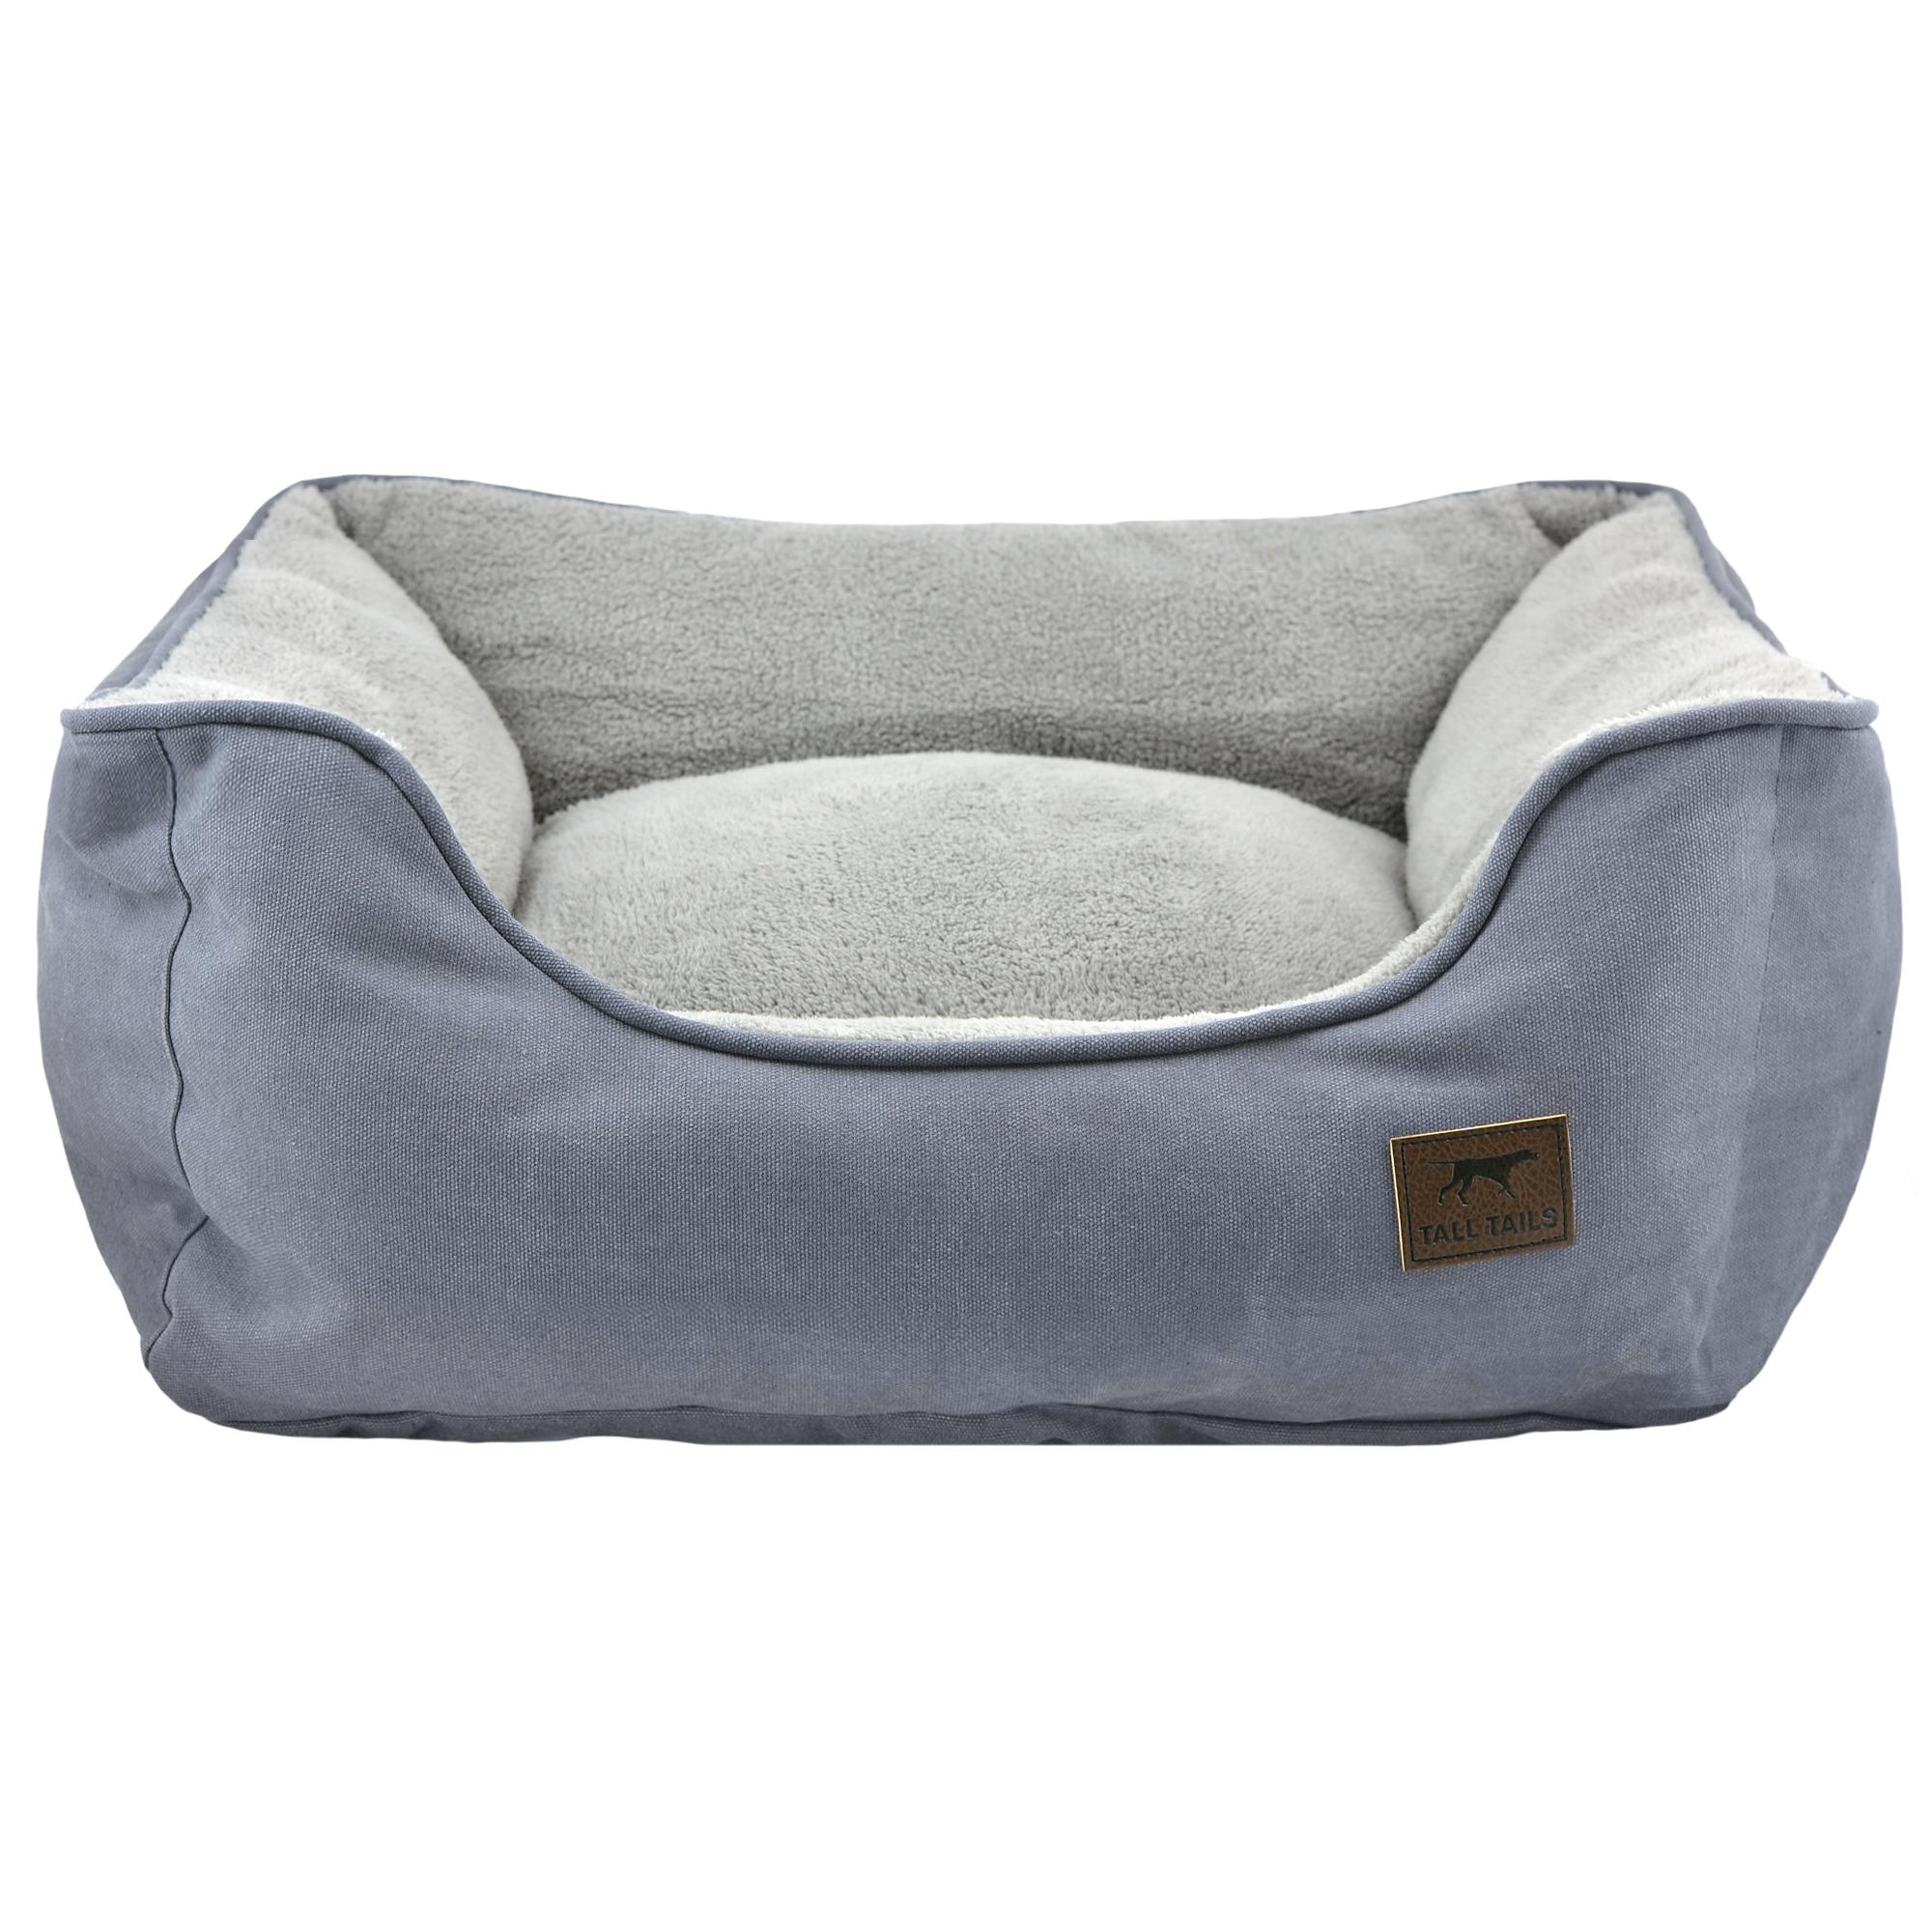 Tall Tails Dream Chaser Bolster Dog Bed, Charcoal, Medium